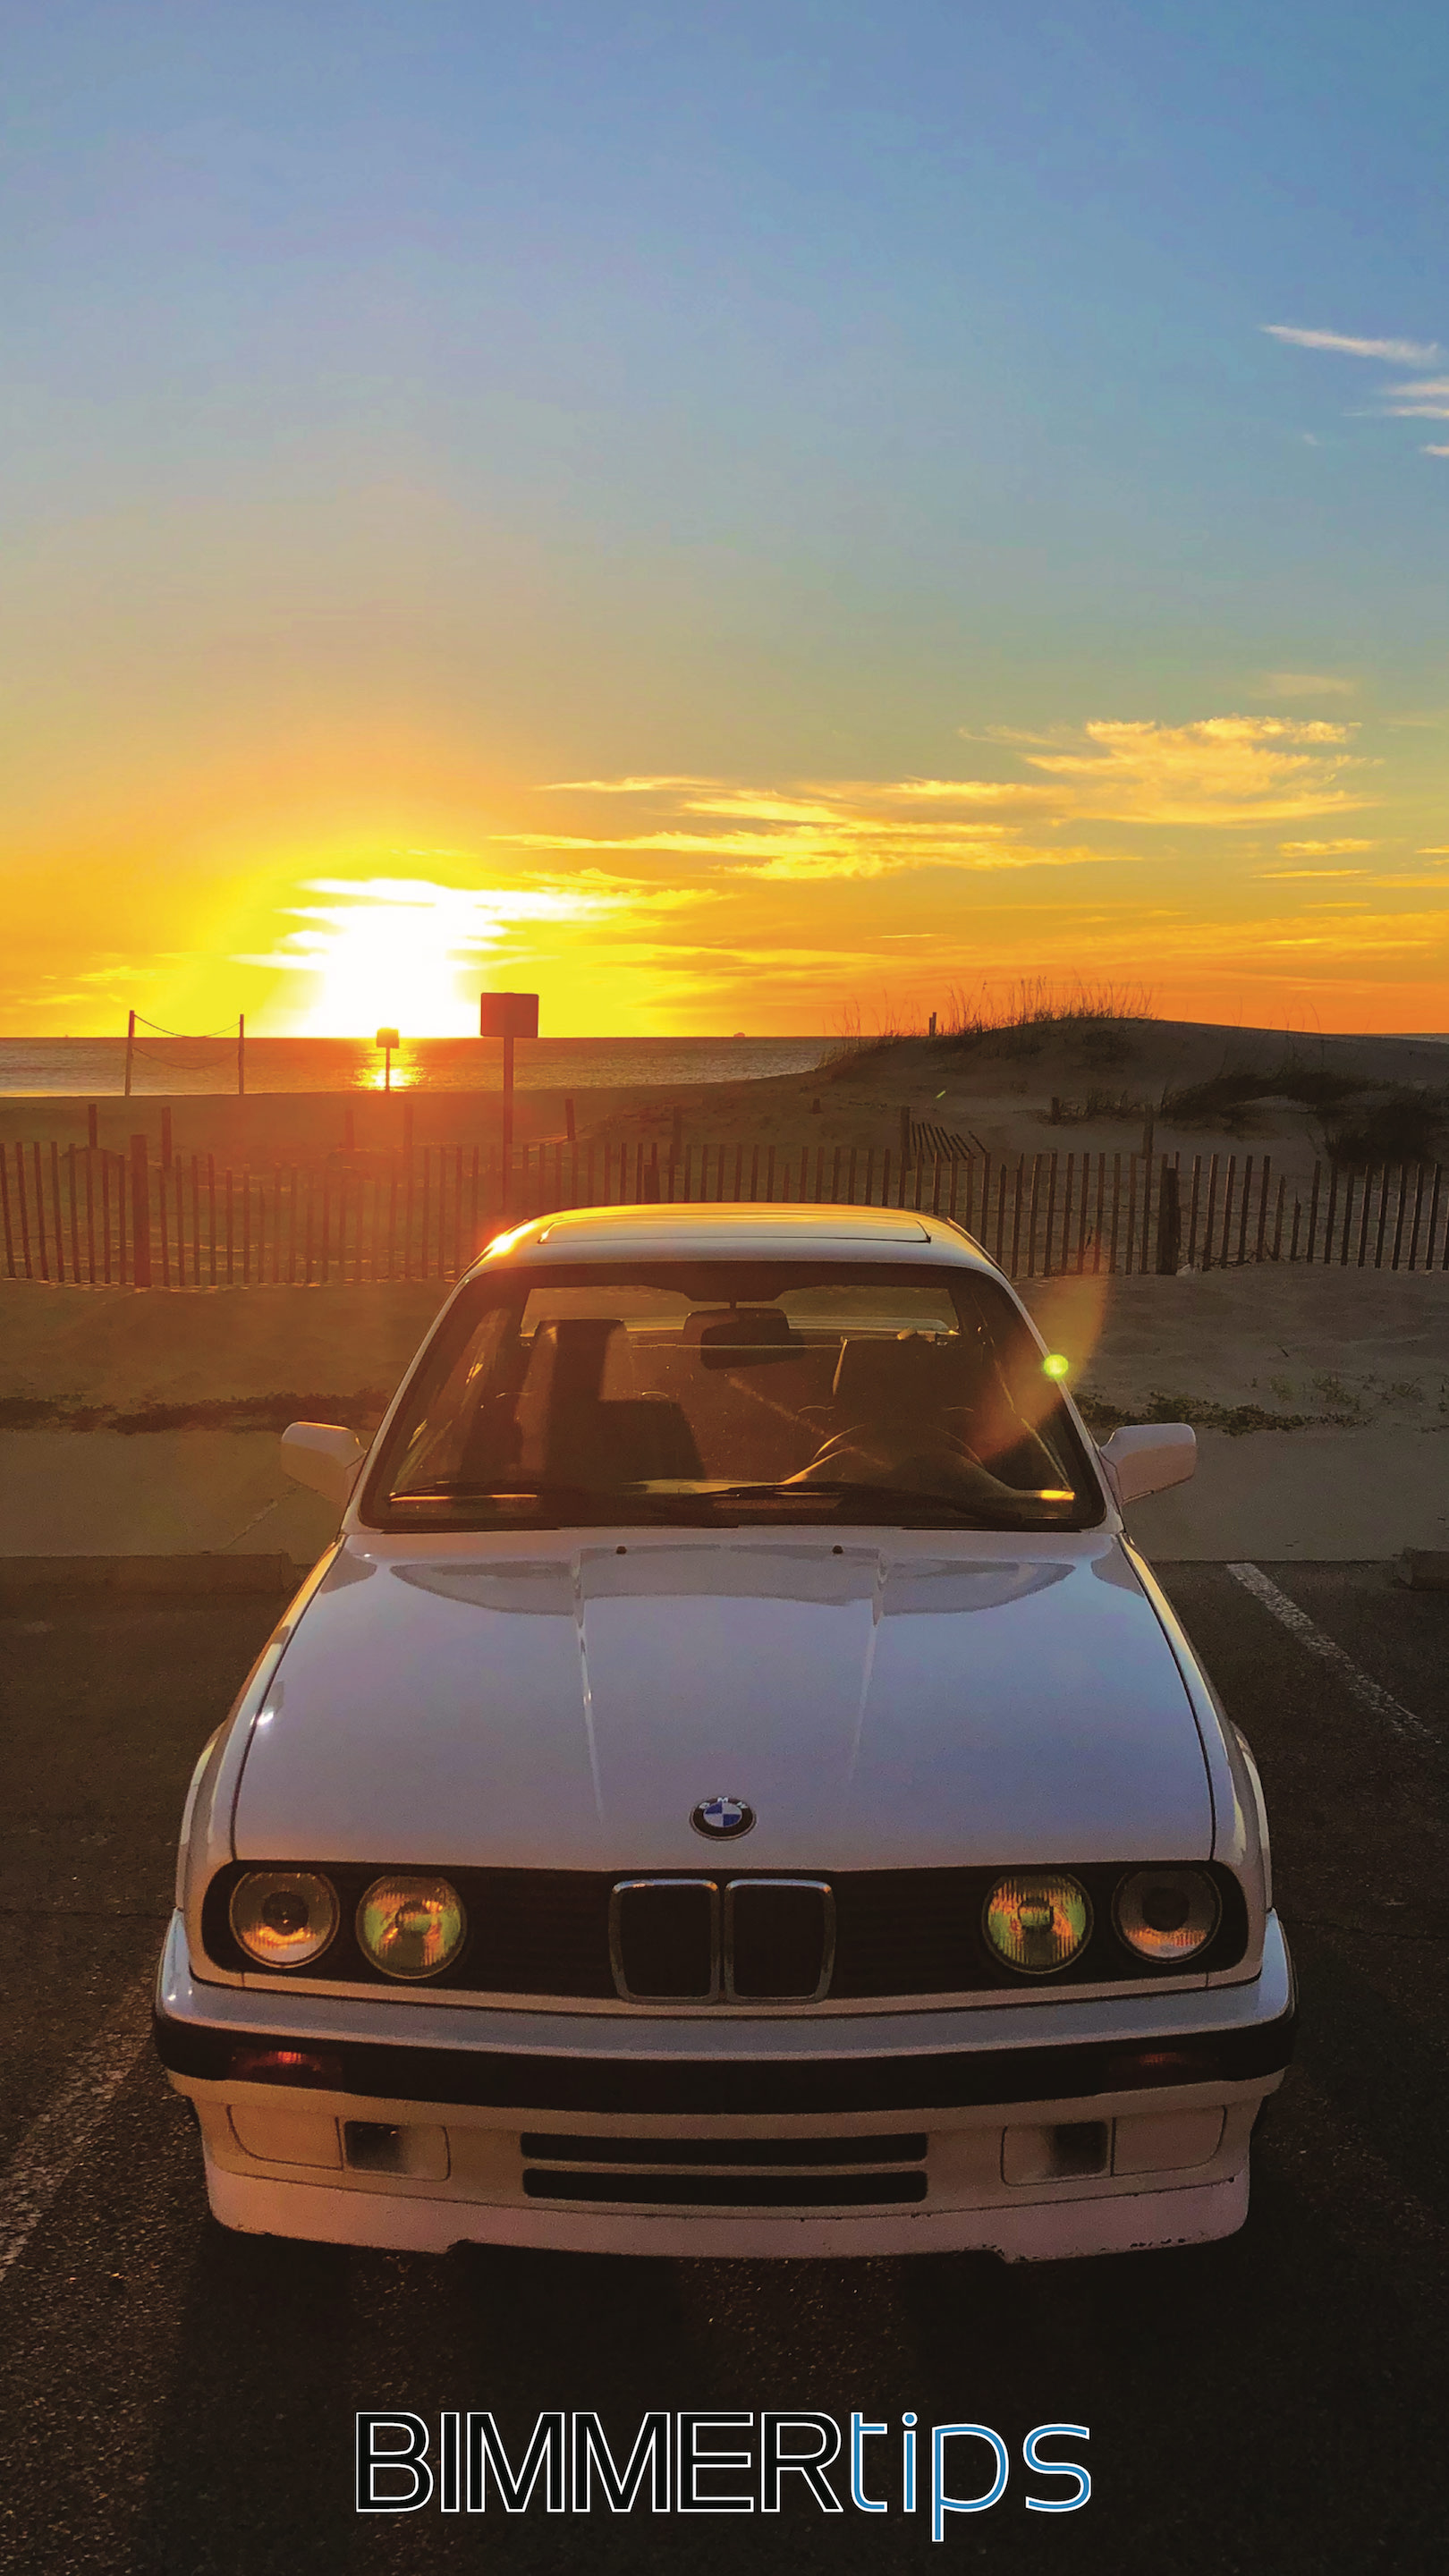 Bmw E30 Wallpaper Iphone 7 109426 Hd Wallpaper Backgrounds Download